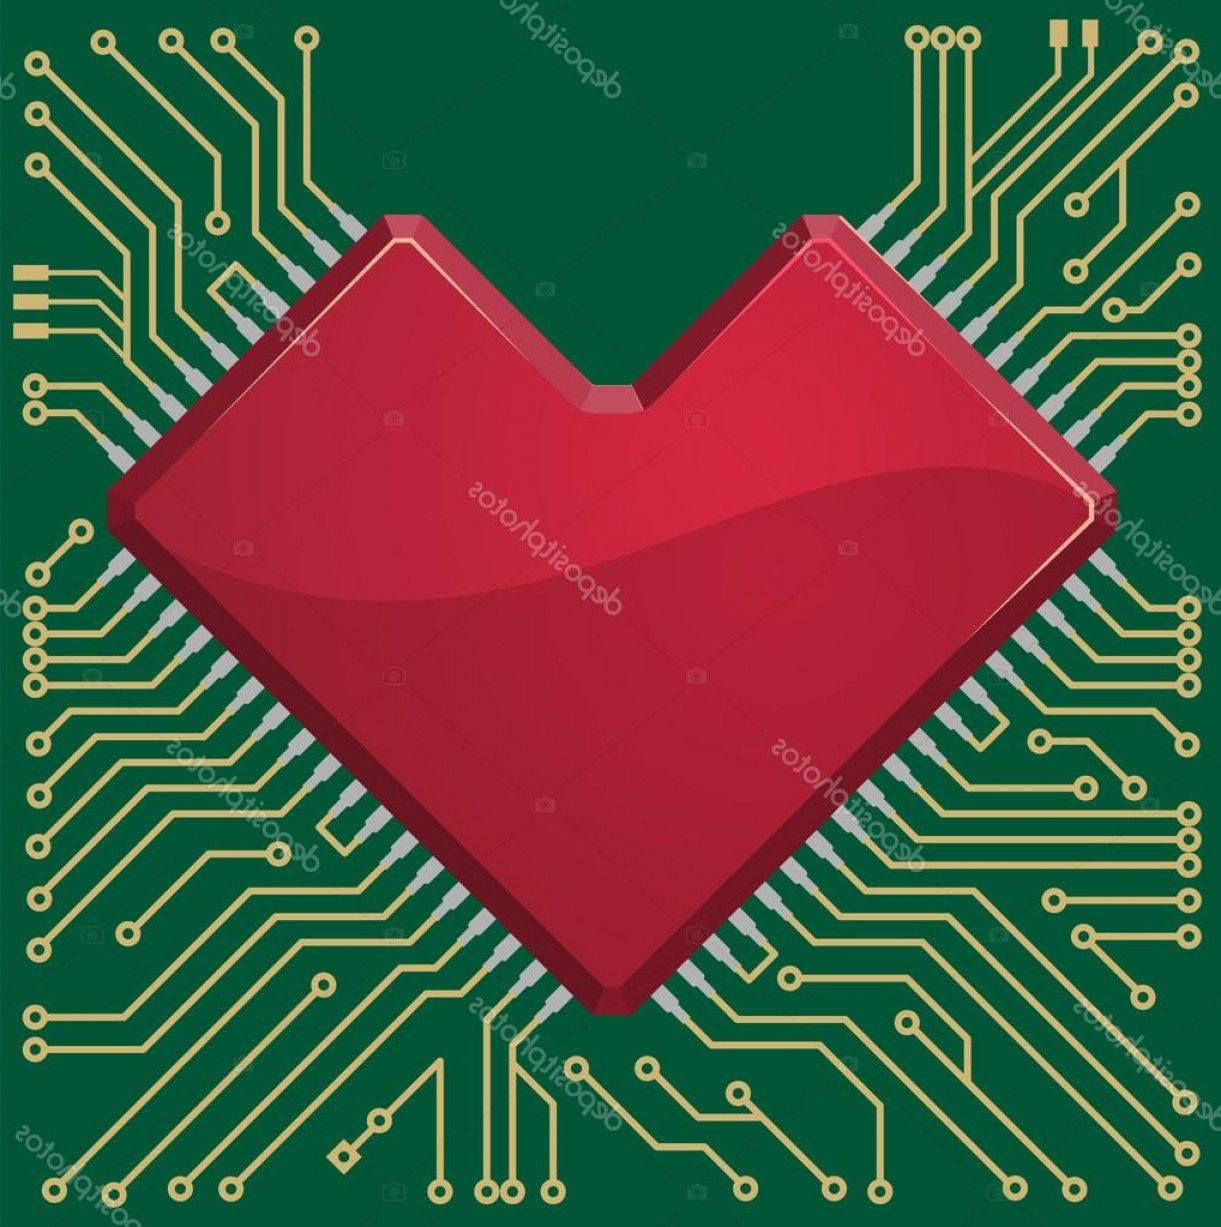 Motherboard Vector With A Heart: Stock Illustration Motherboard Heart Chip On Microcircuit